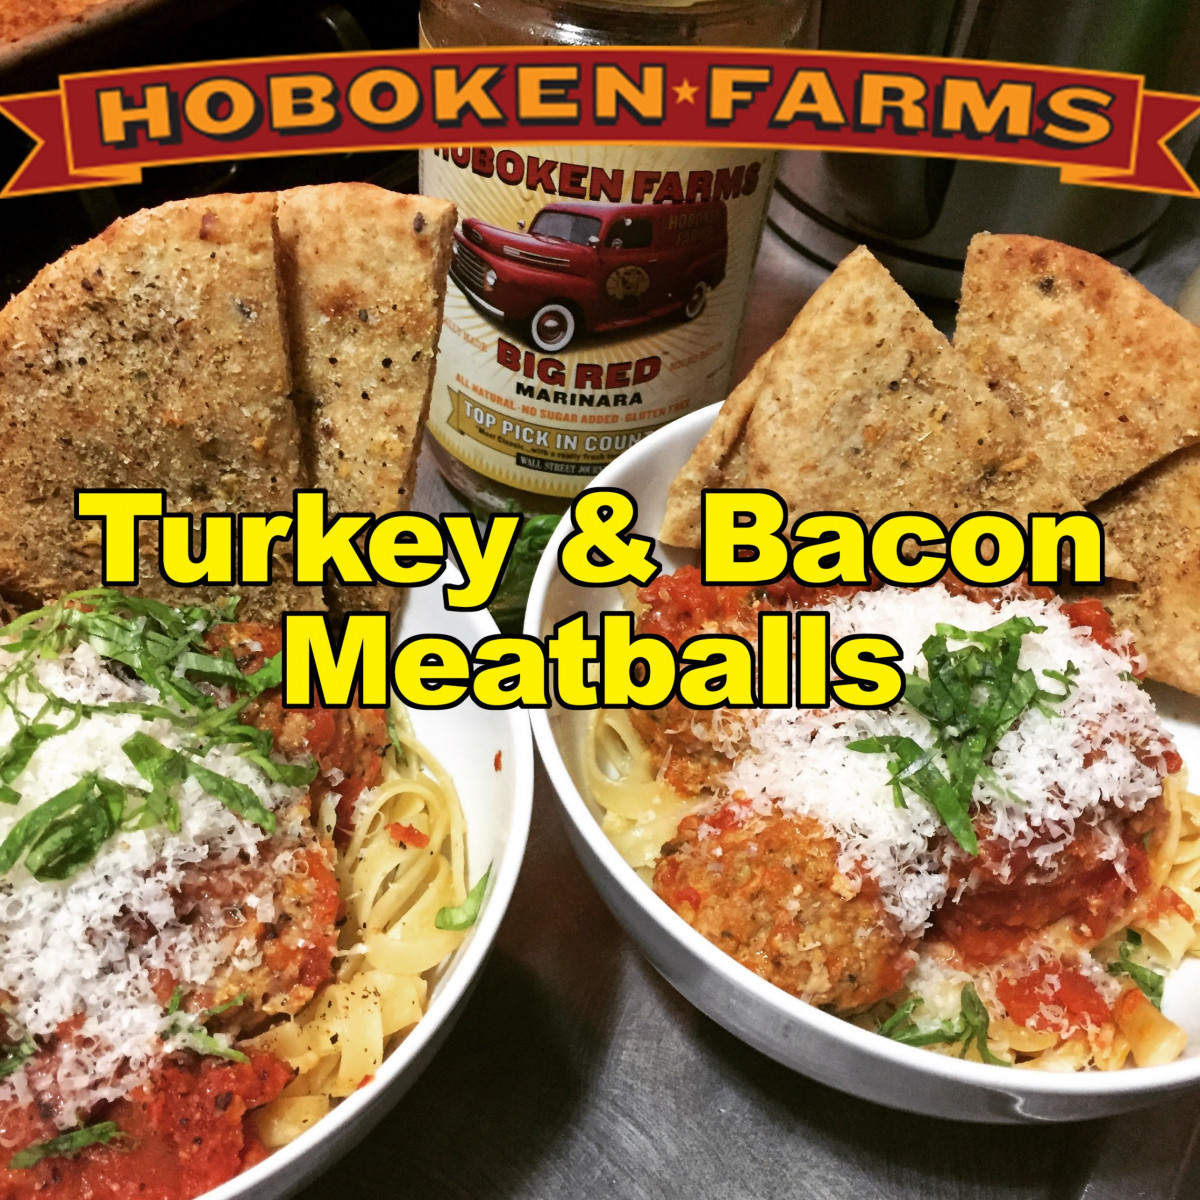 Turkey and Bacon Meatballs